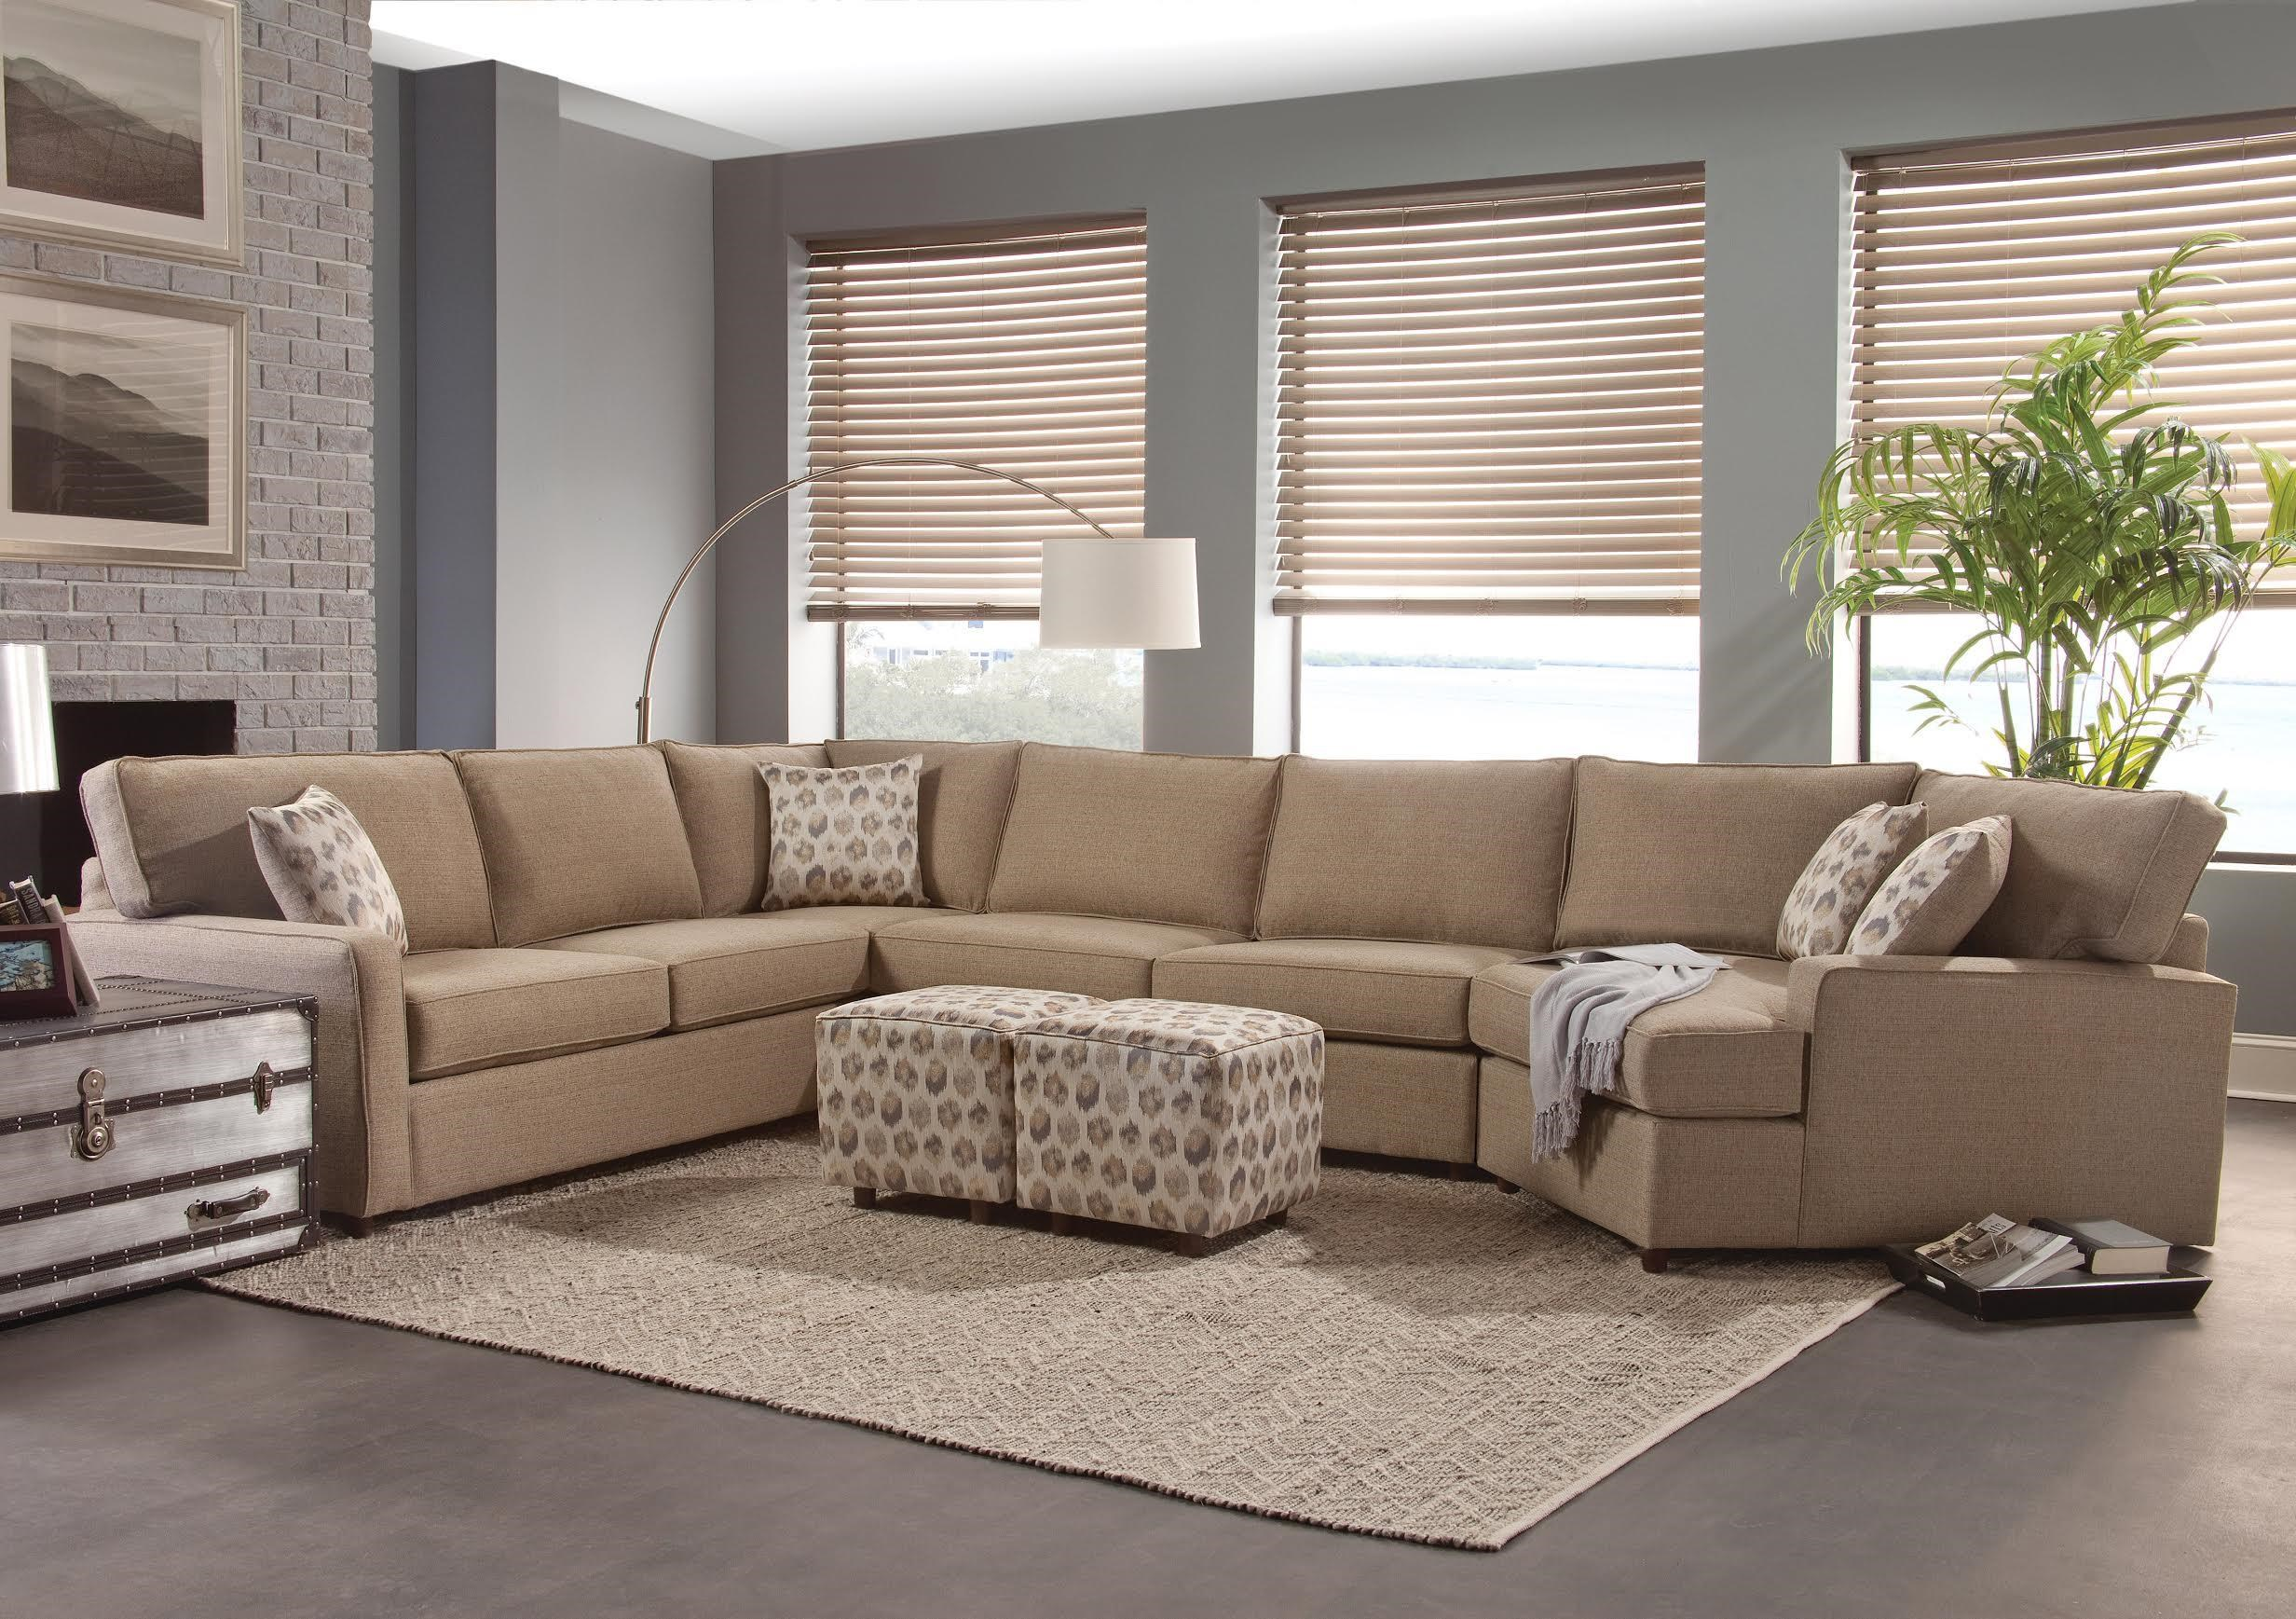 Belfort Essentials Eliot Transitional Sectional Sofa